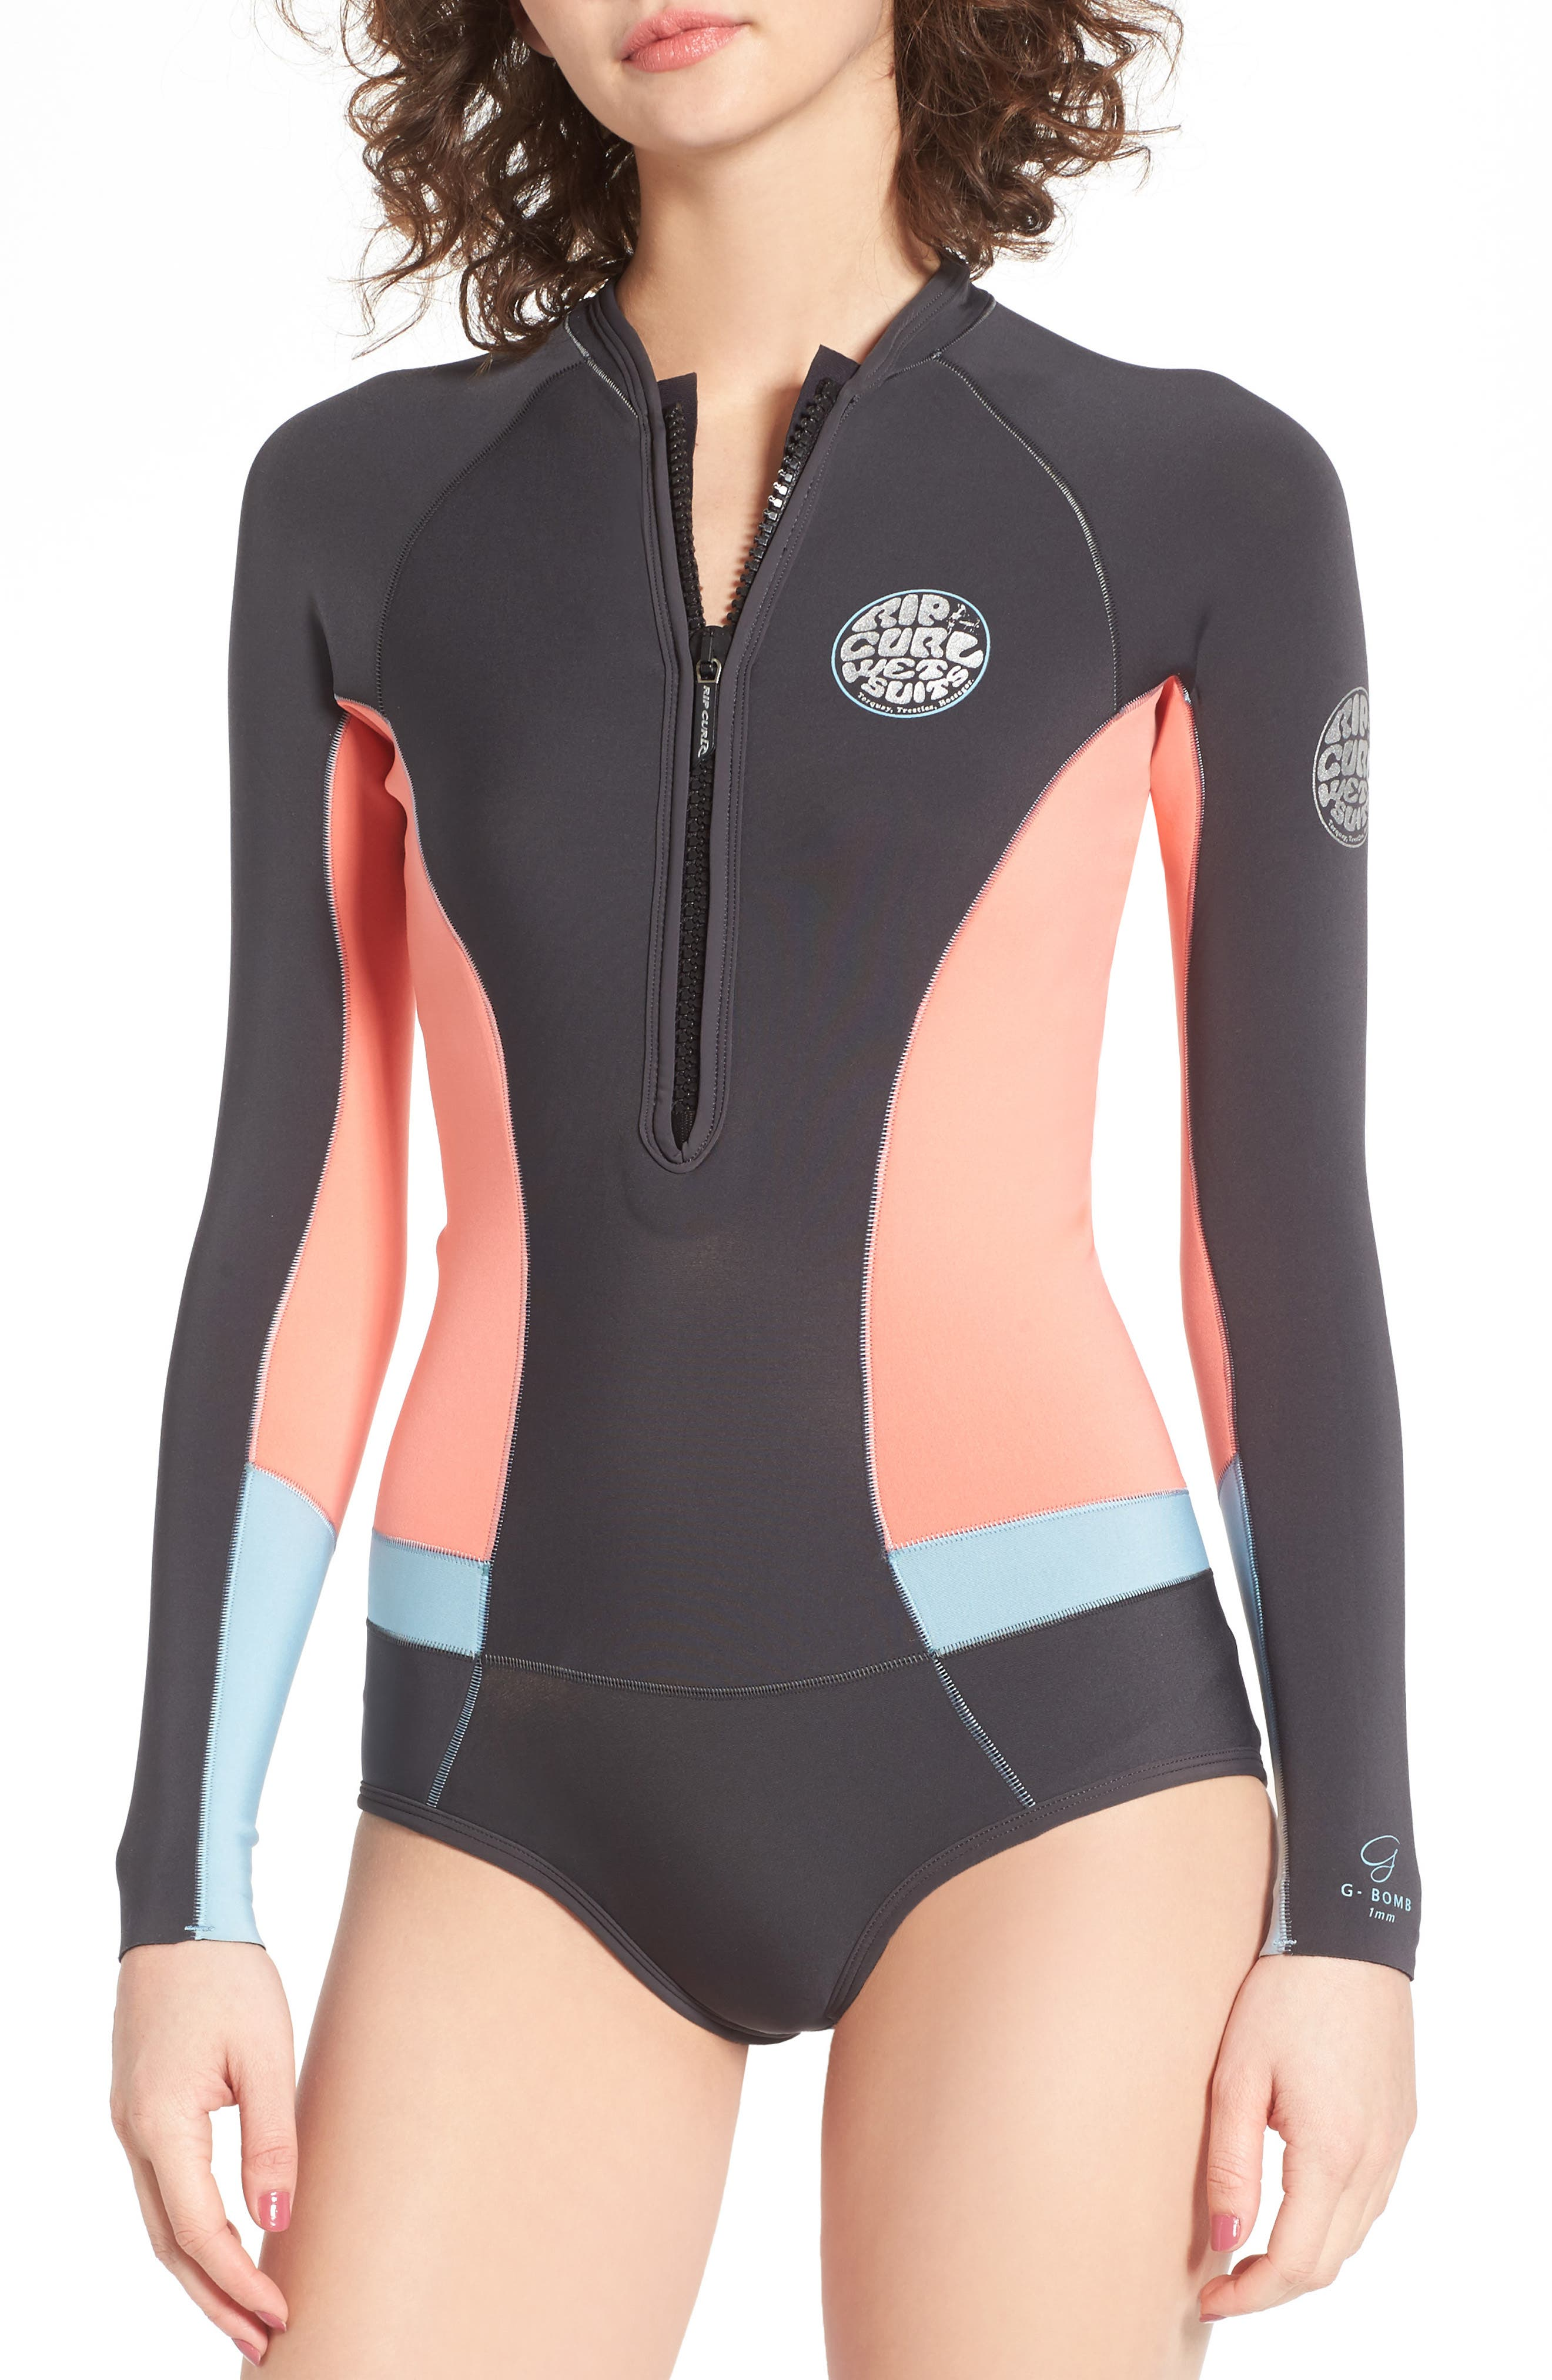 G-Bomb Long Sleeve Wetsuit,                             Main thumbnail 1, color,                             Coral